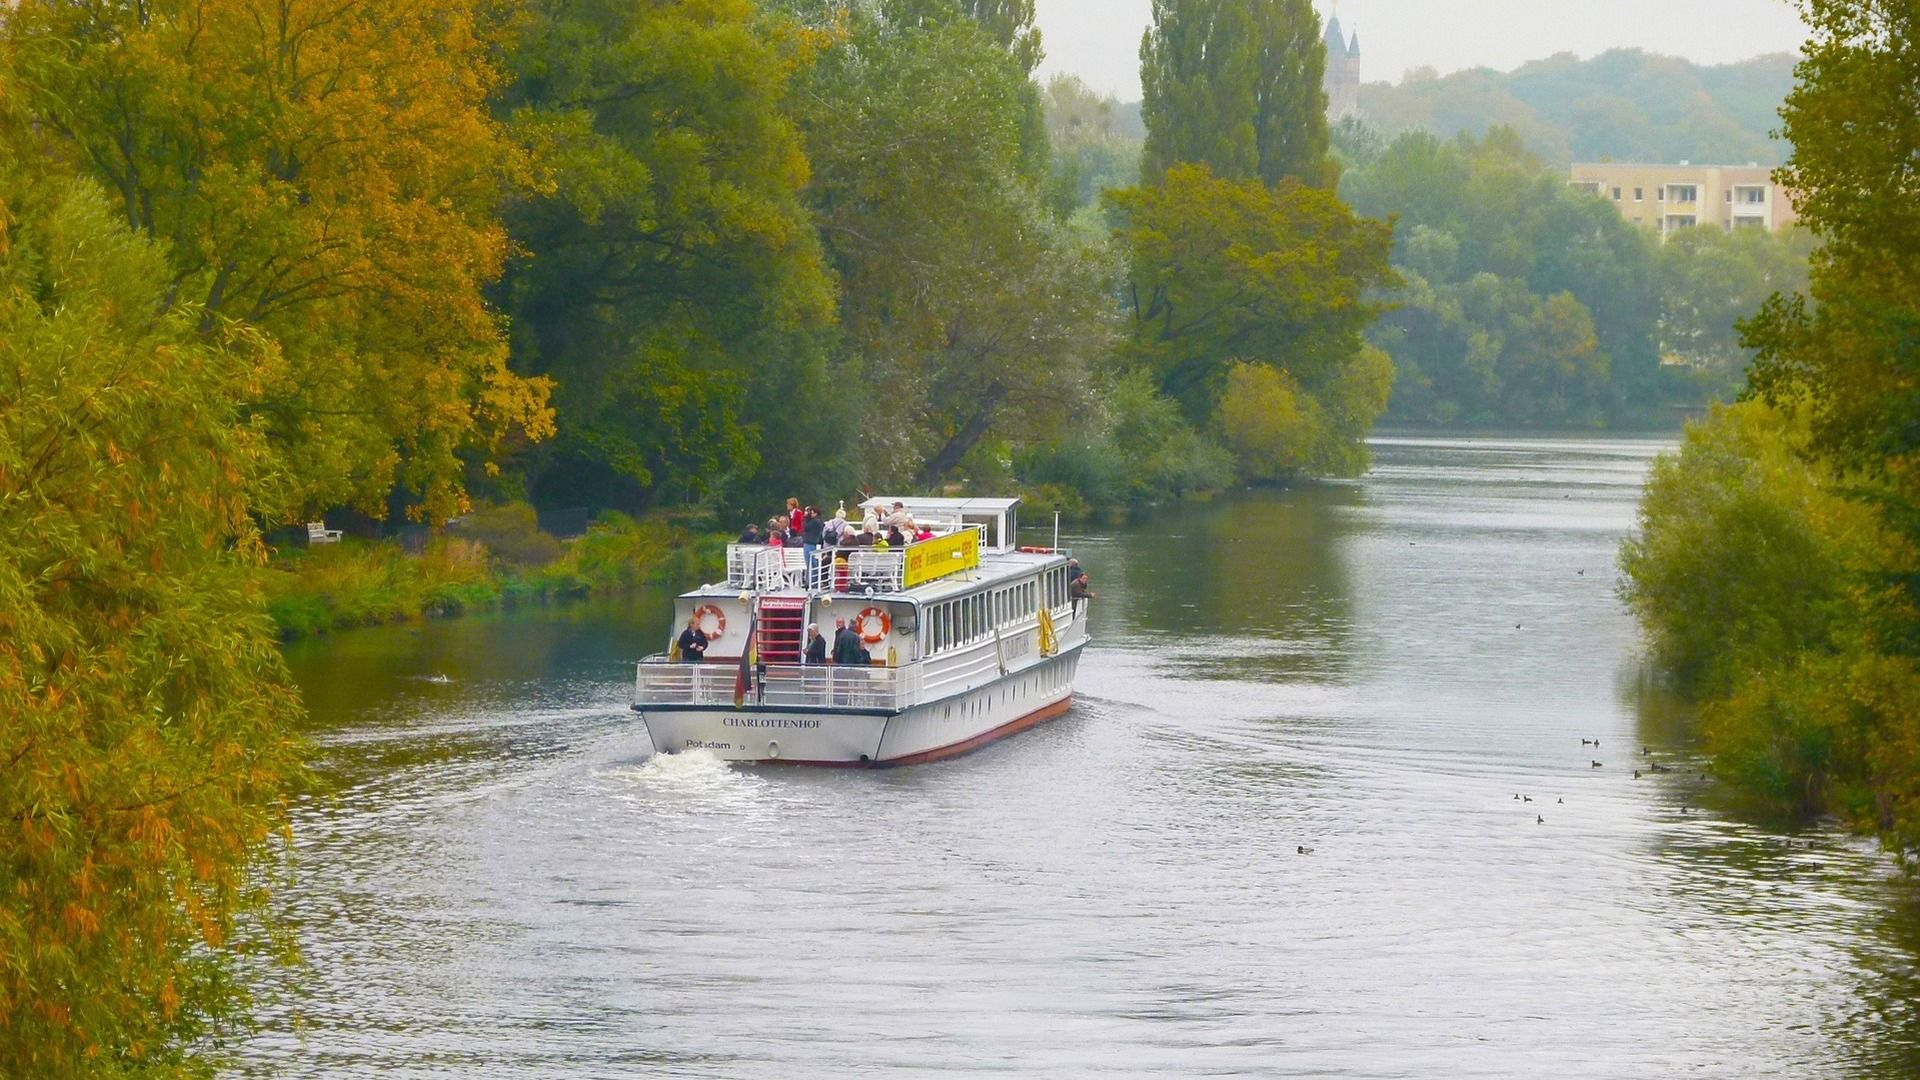 6 Reasons To Consider A River Cruise This Fall